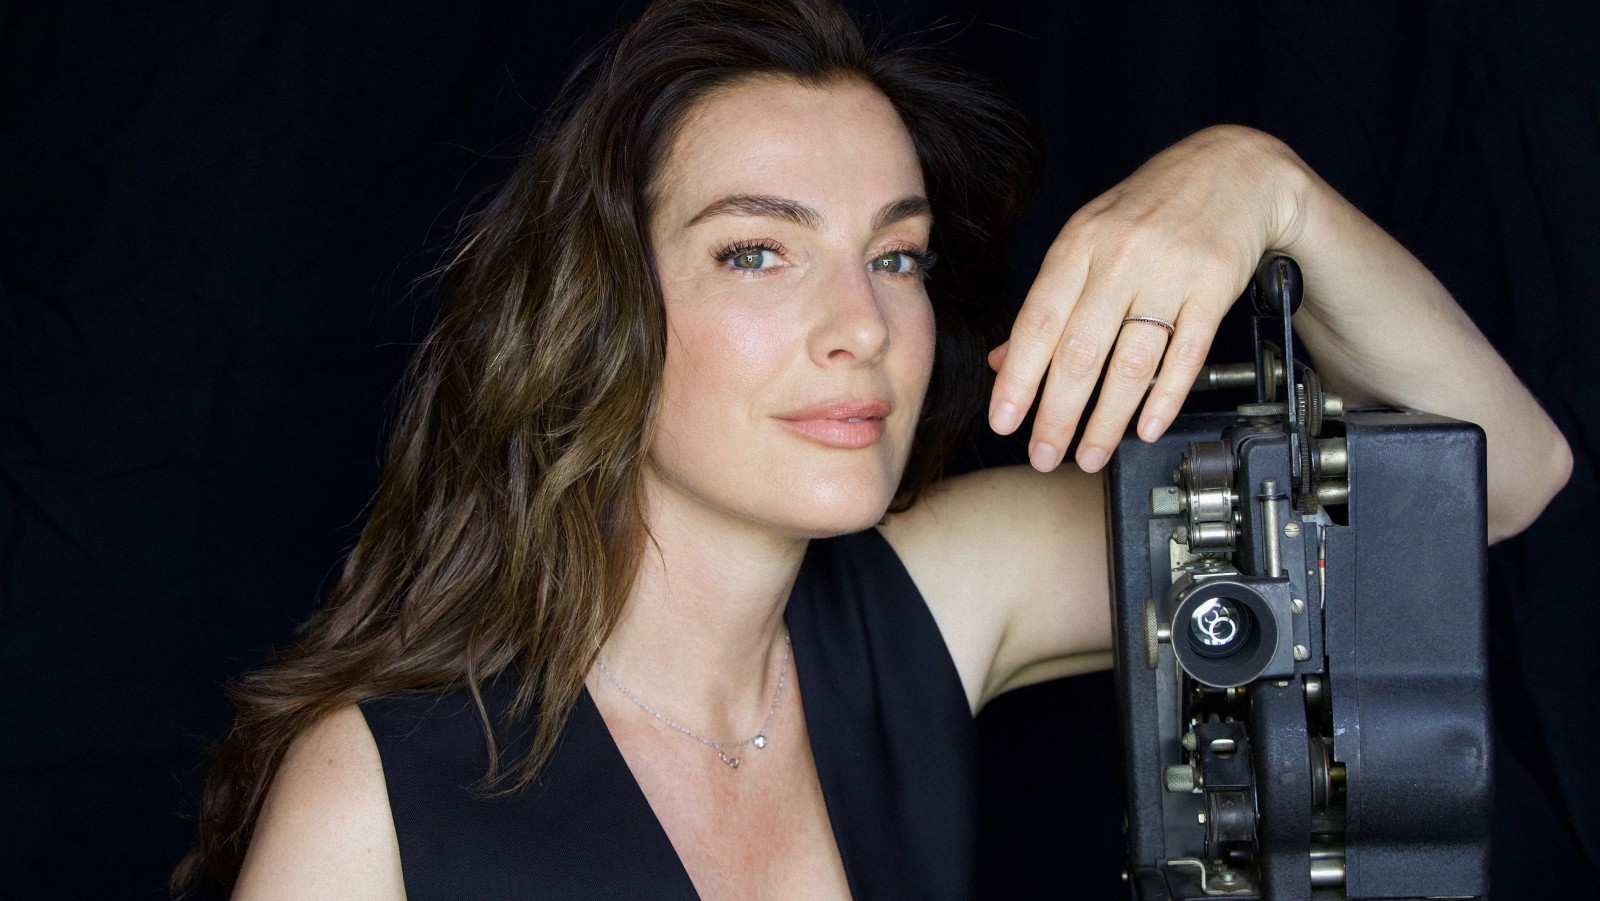 Israeli Stars Rise in Hollywood—and it's not just Gal Gadot and Natalie Portman